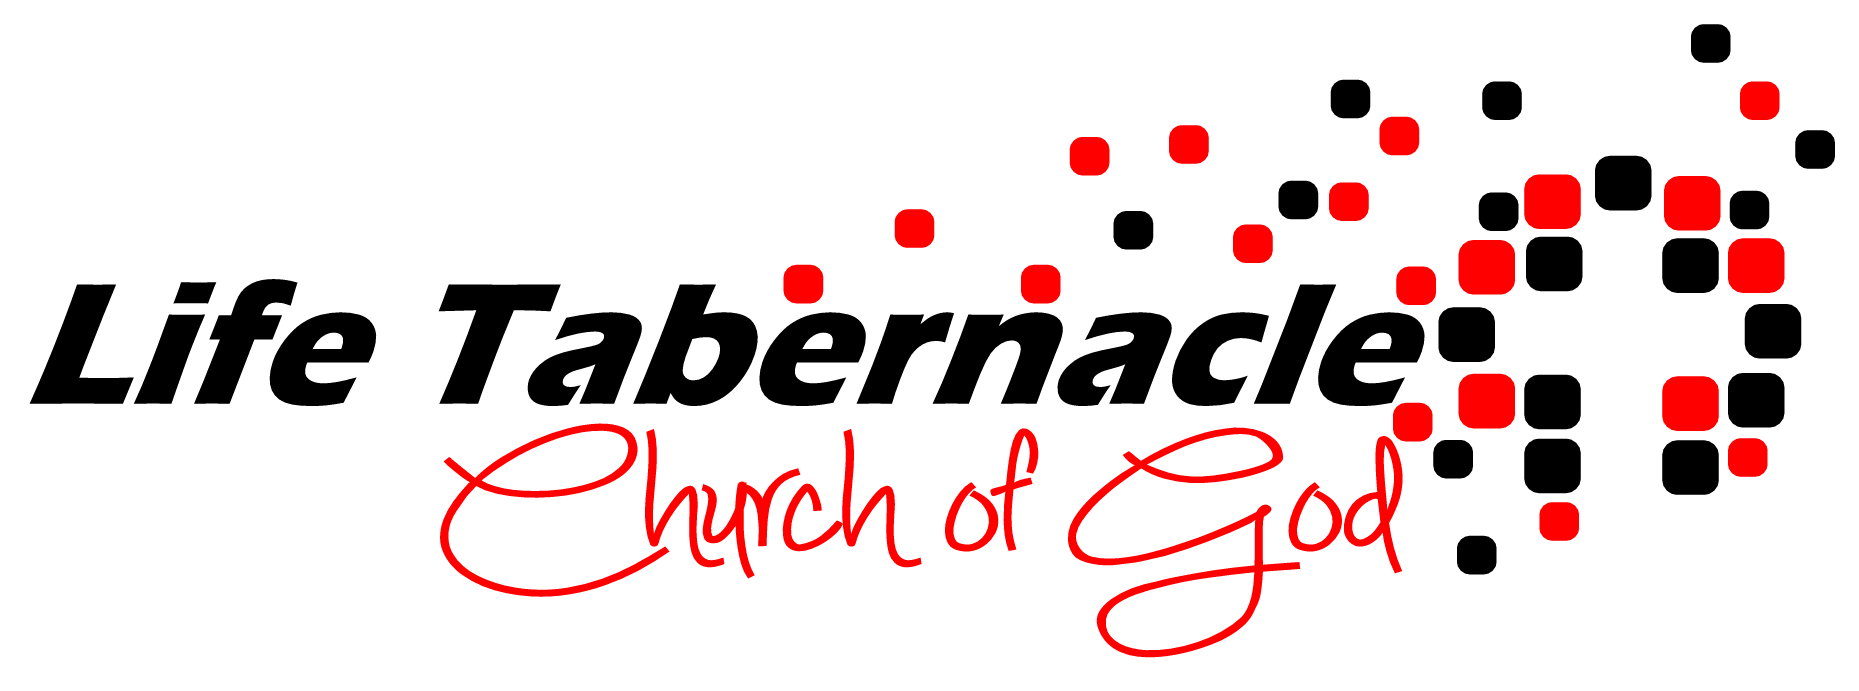 Life Tabernacle Church of God